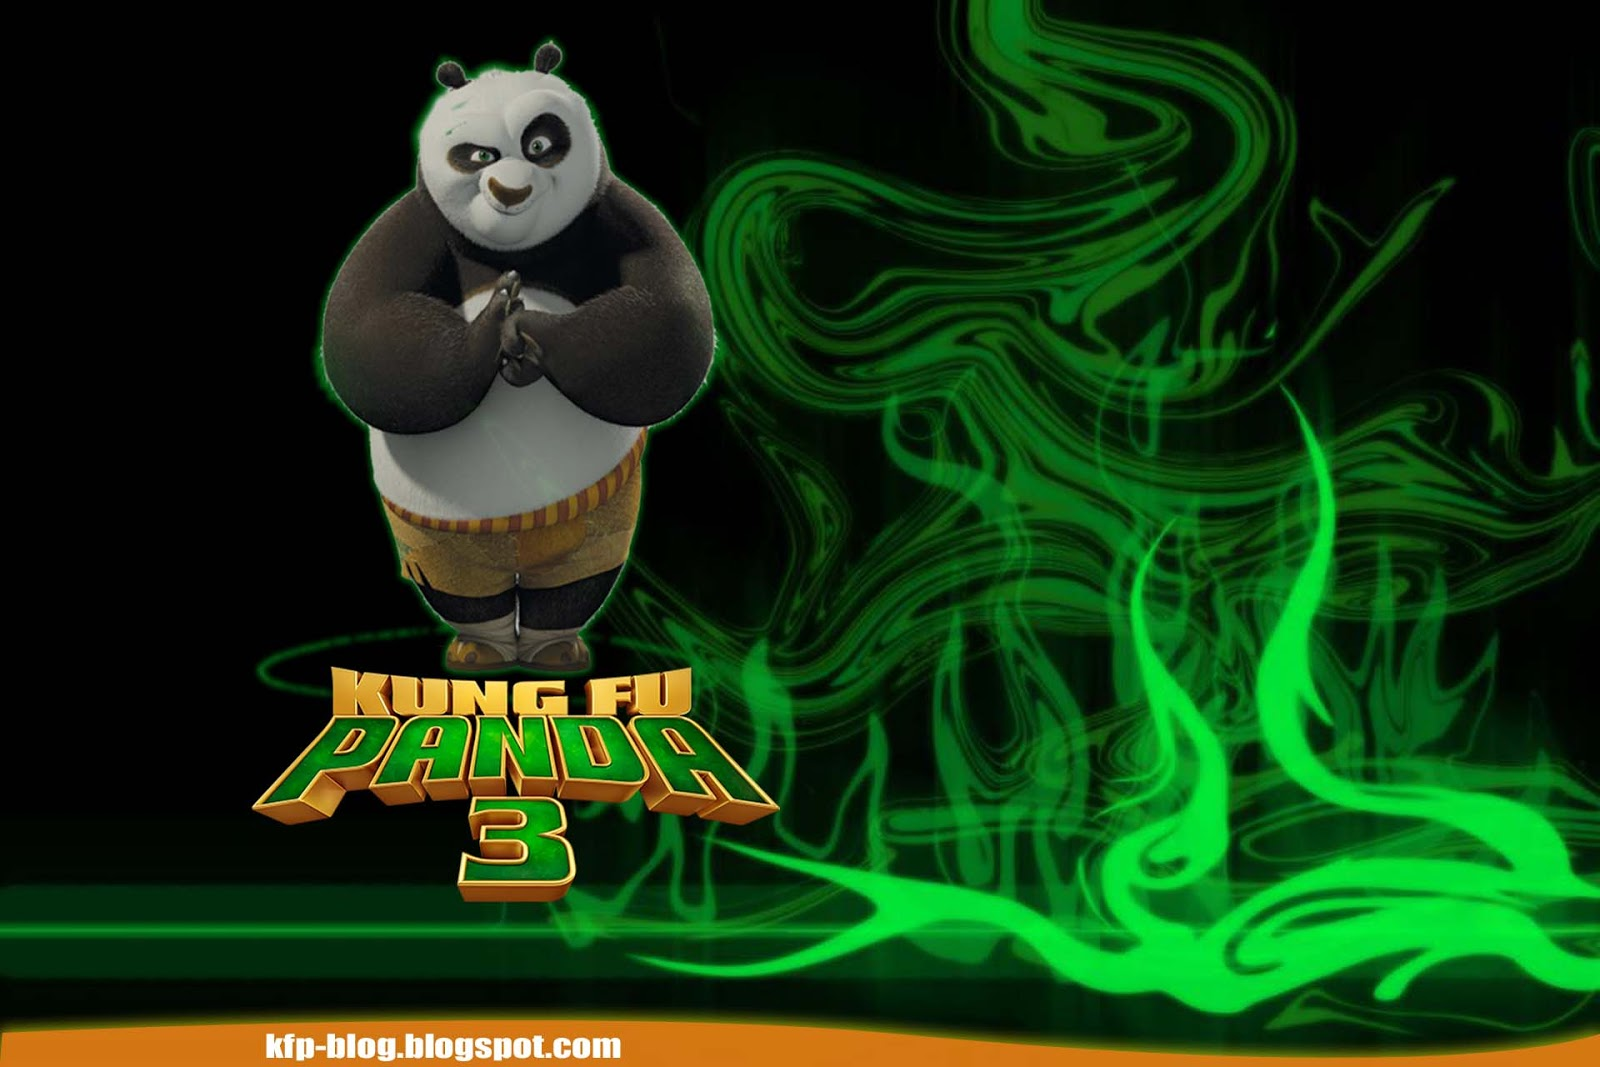 kung fu panda series hd wallpapers, reviews and news: kung fu panda